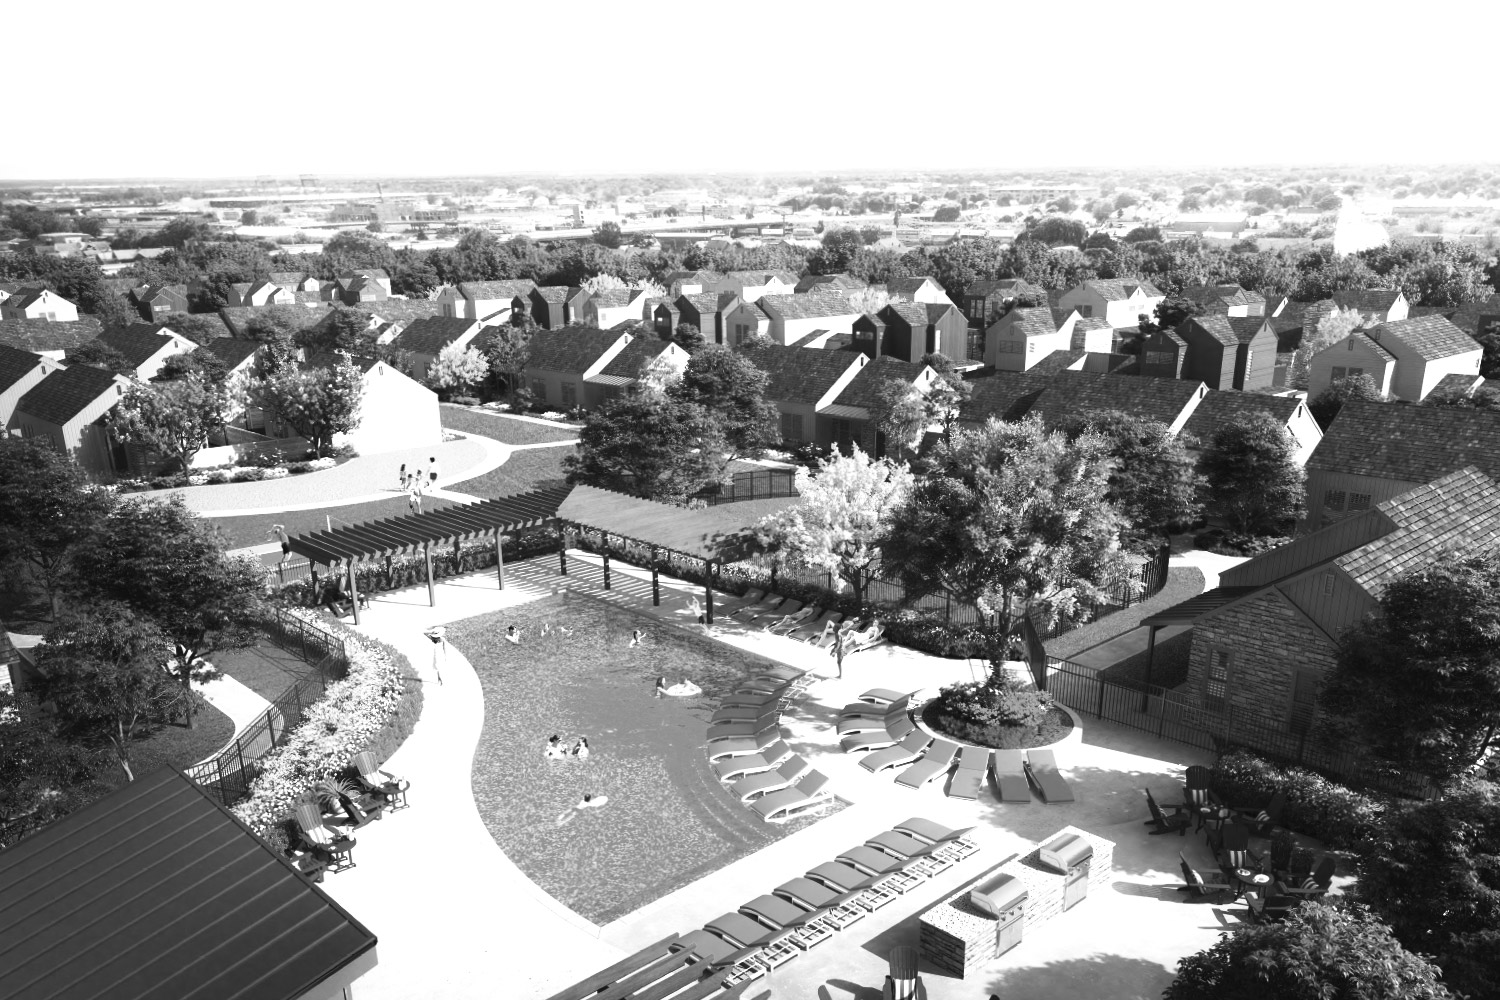 parcHAUS community pool, pickle ball courts and neighborhood